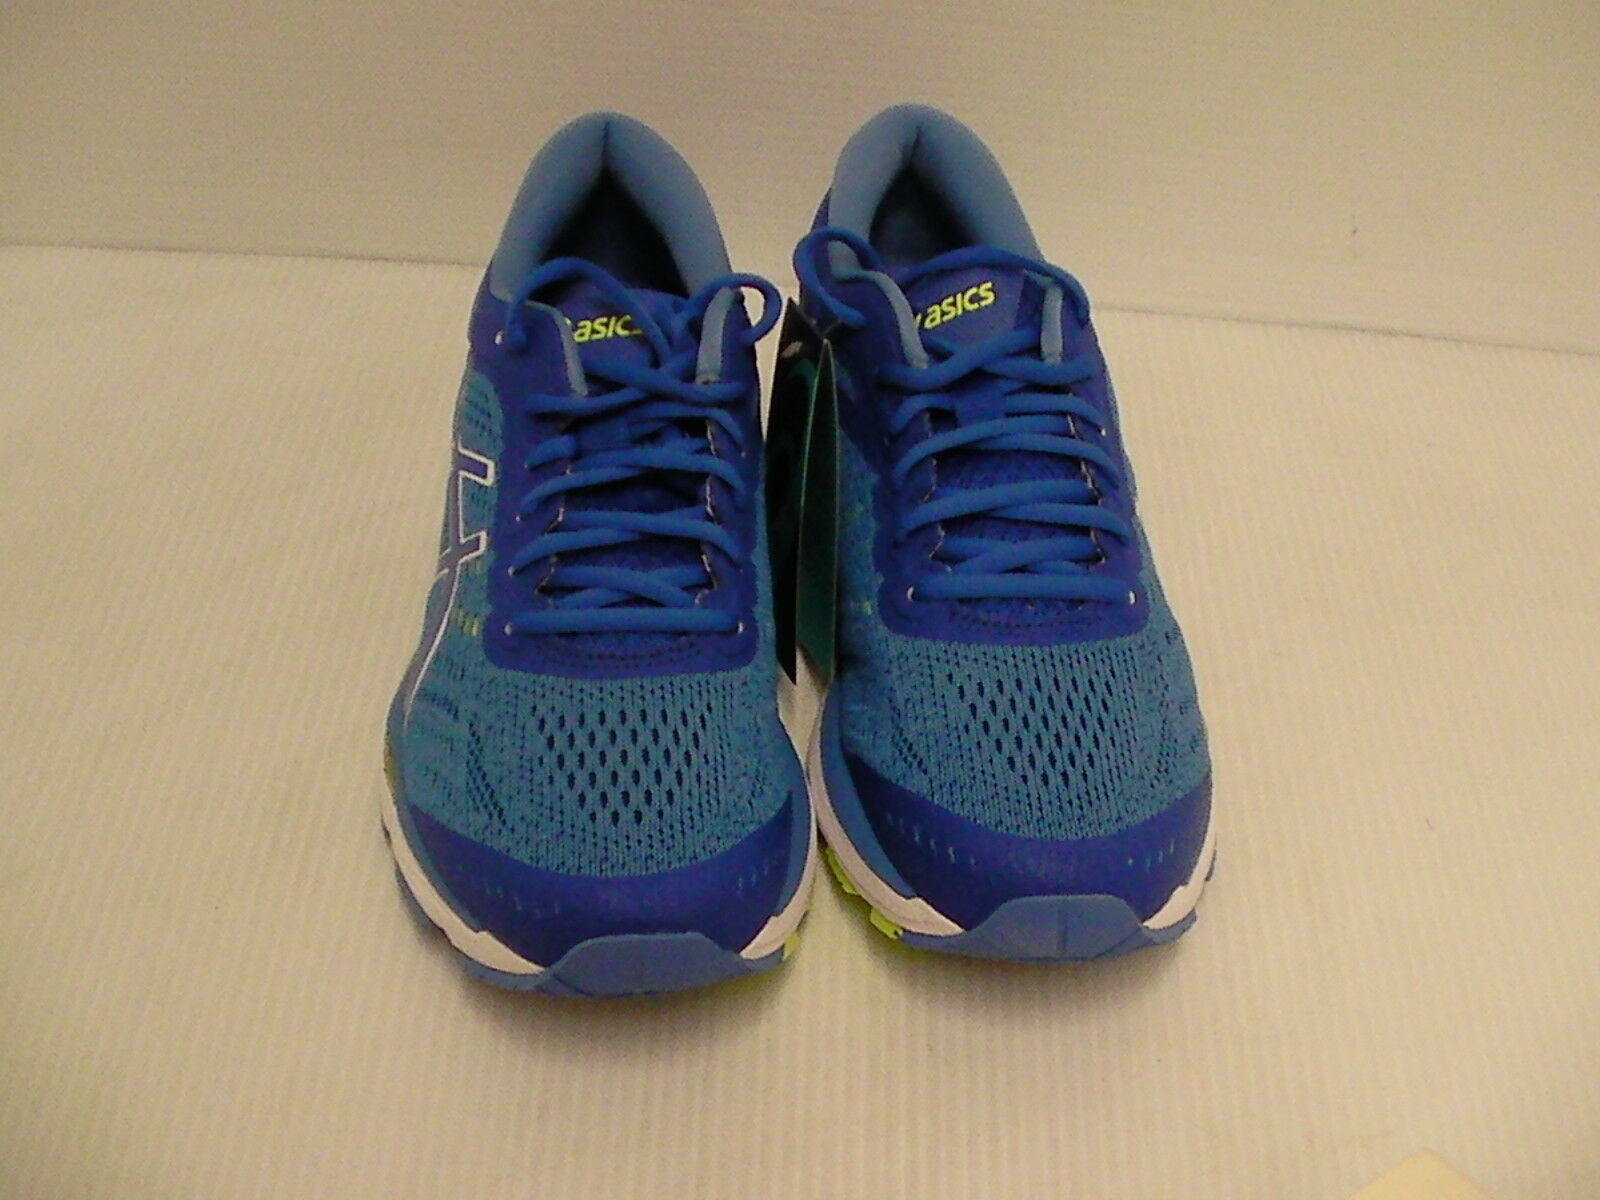 Asics women's gel kayano 24 blue purple regatta blue running shoes size 9.5